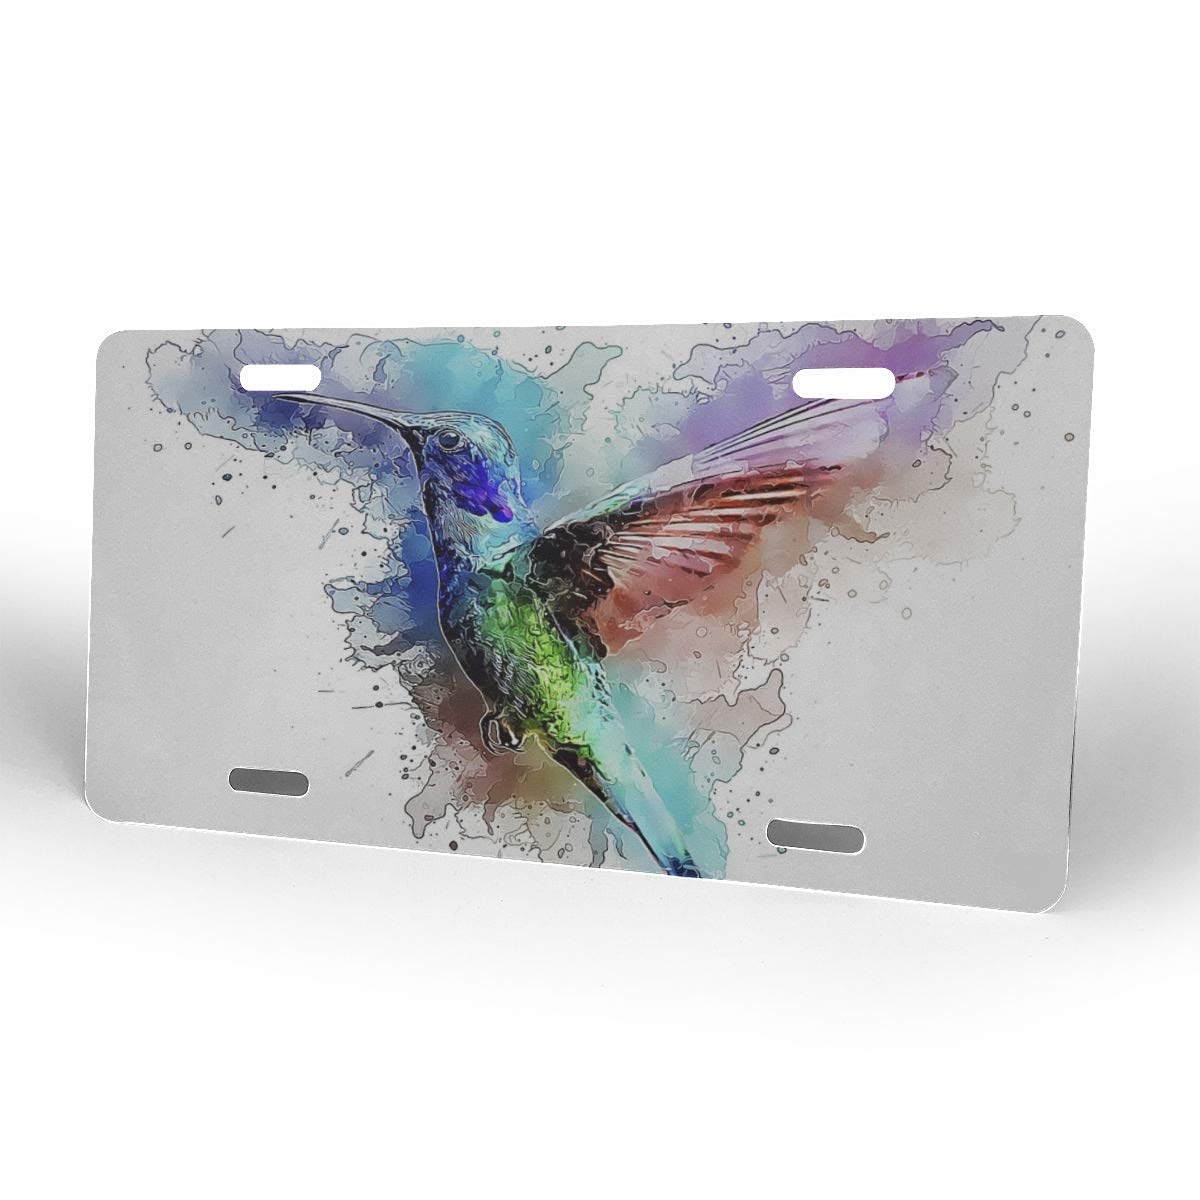 4 Hole Custom Decorated License Plate Vanity Tag Aluminum Car Accessories Novelty Personalized License Plate Cover Hummingbird Bird Trochilidae Fly Spring Dress Print Car Tag Printer 6x12 in